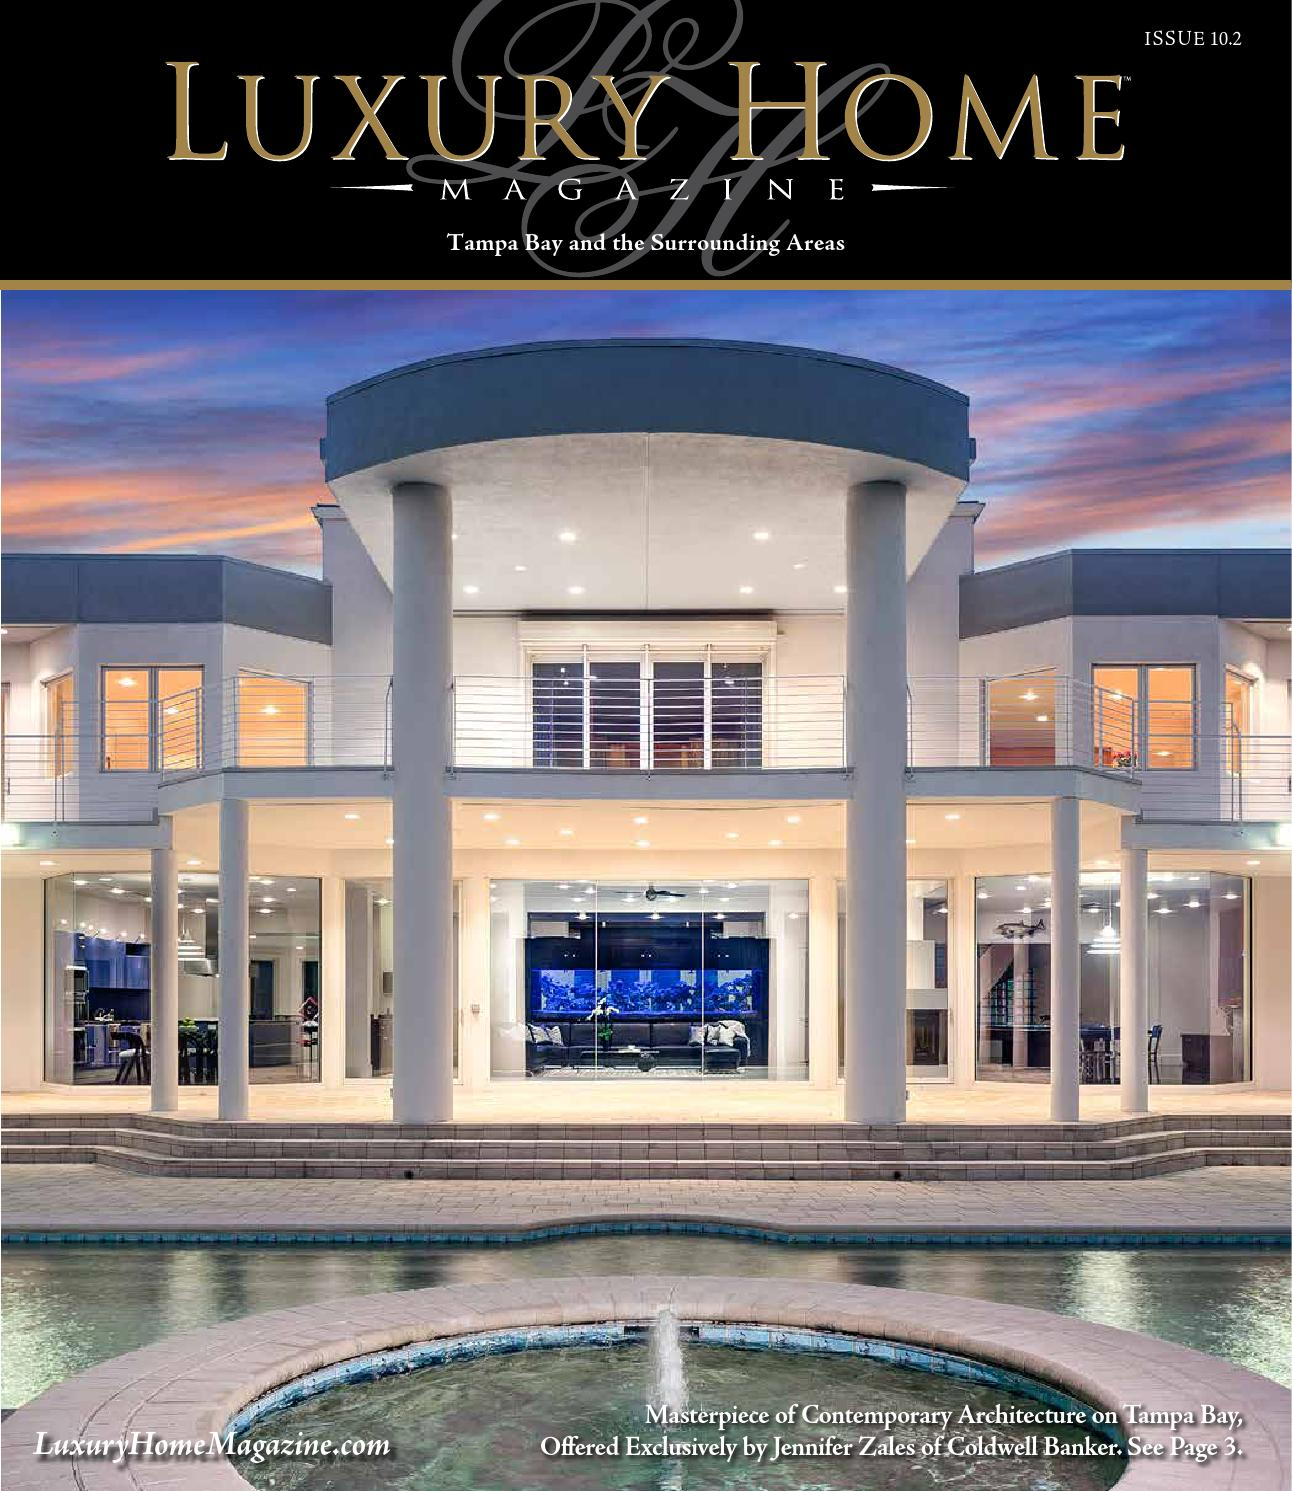 Luxury home magazine tampa bay issue 10 2 by luxury home for Luxury home design magazine